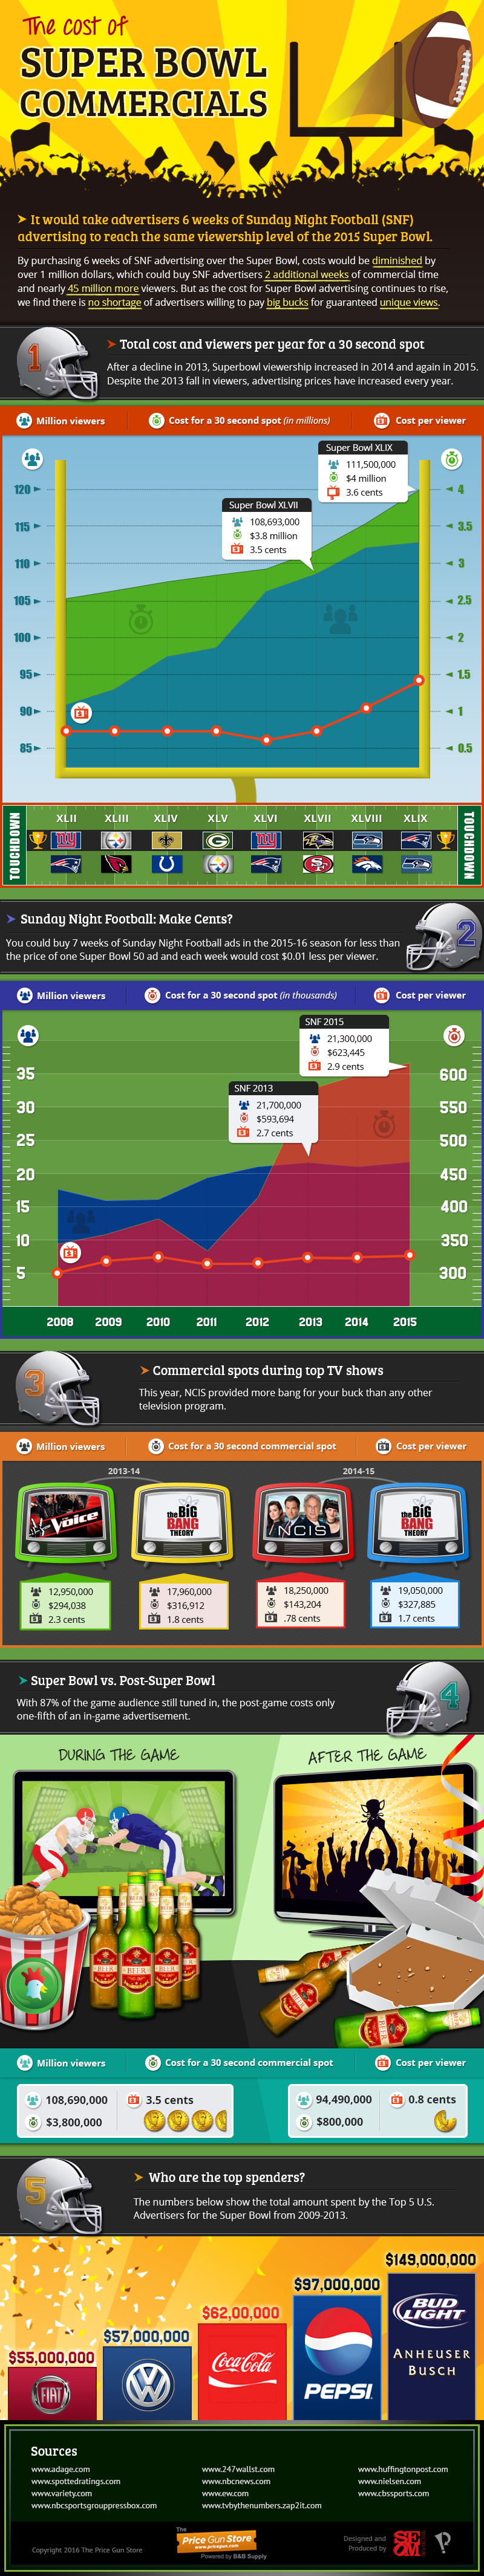 Cost of Super Bowl Ads